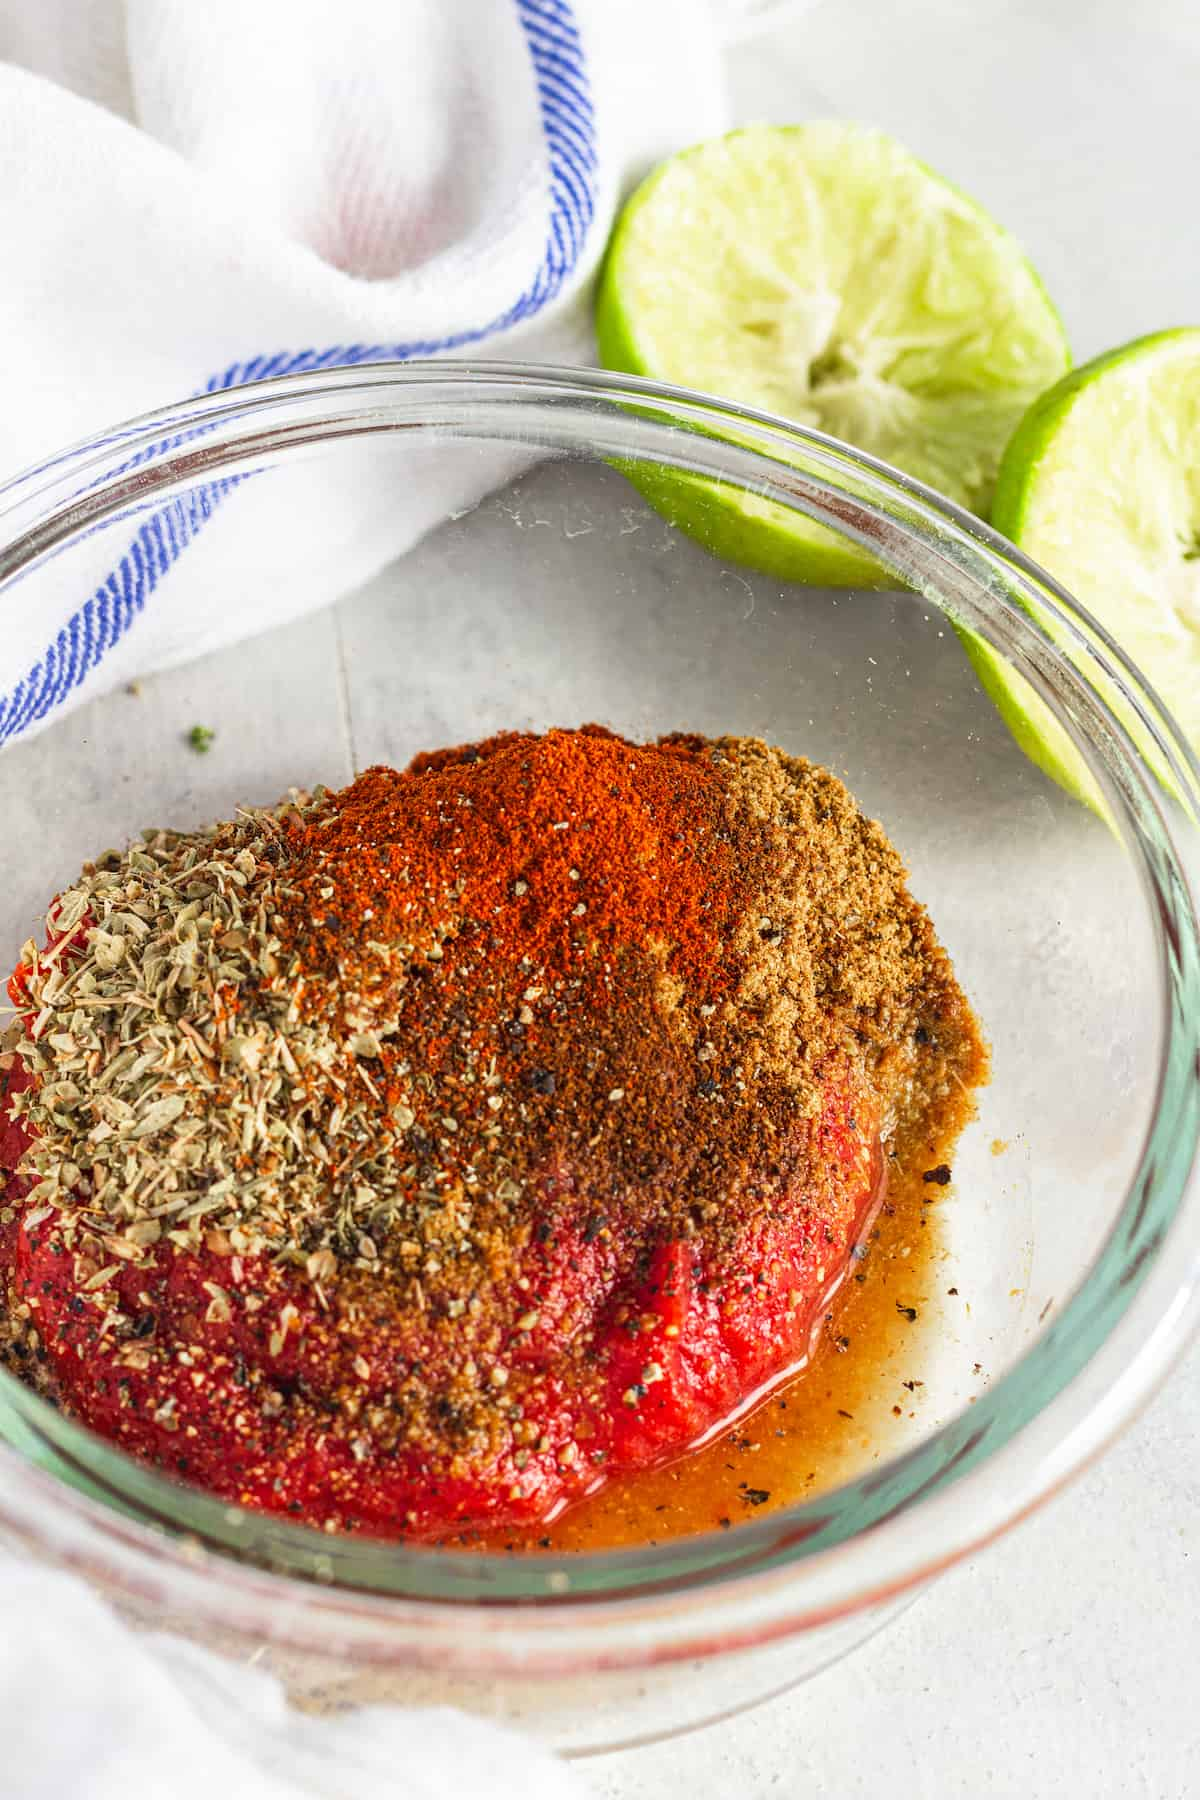 The Tomato Paste, Seasoning and Lime Juice Mixture in a Glass Bowl Beside a Juiced Lime